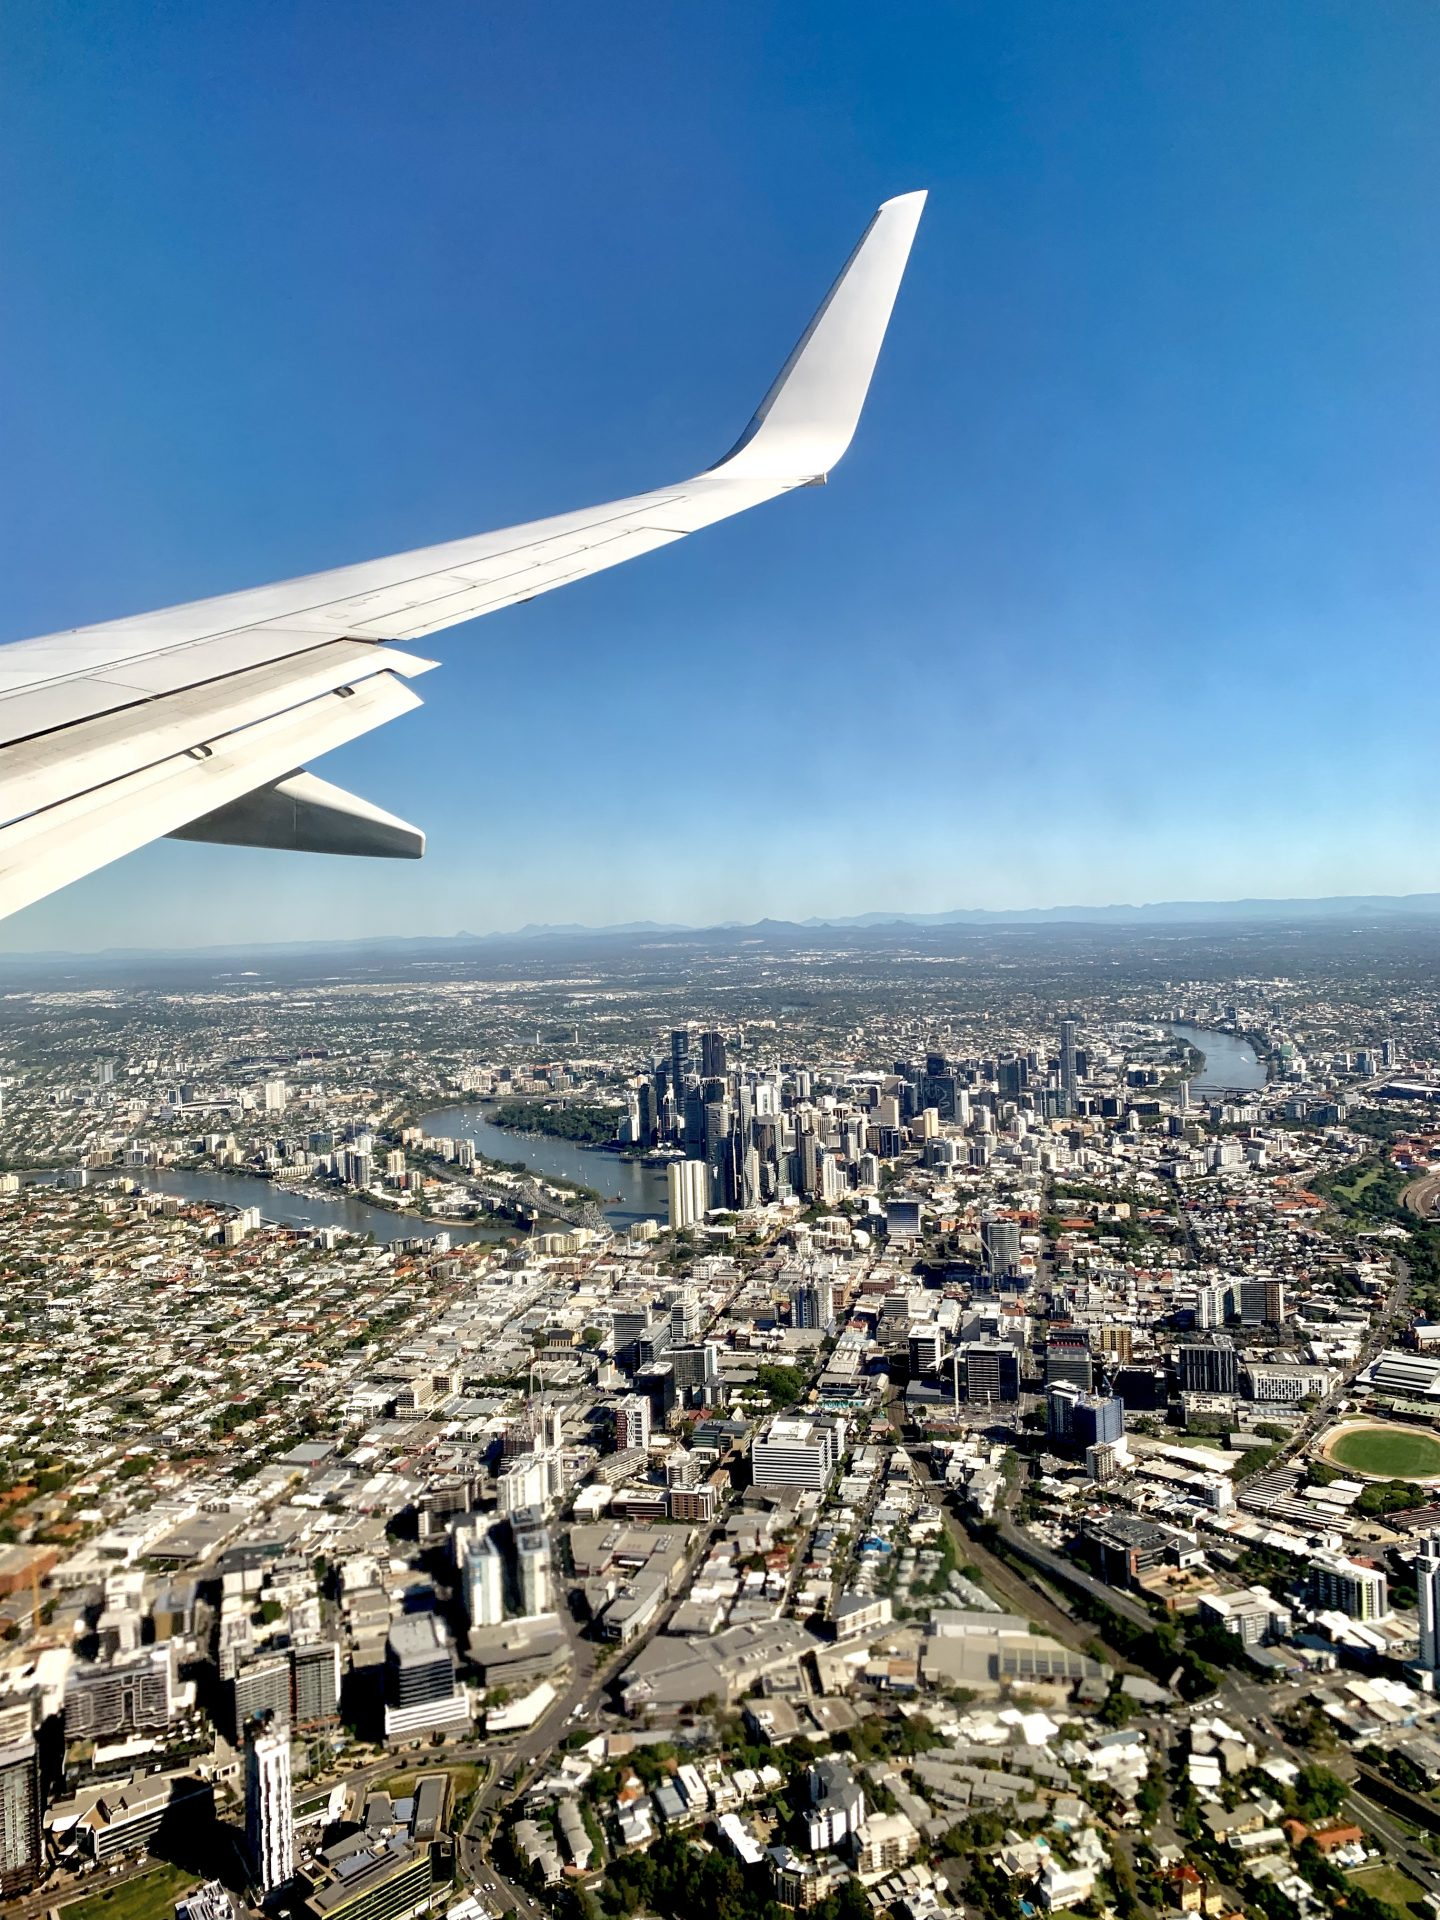 Brisbane seen from plane